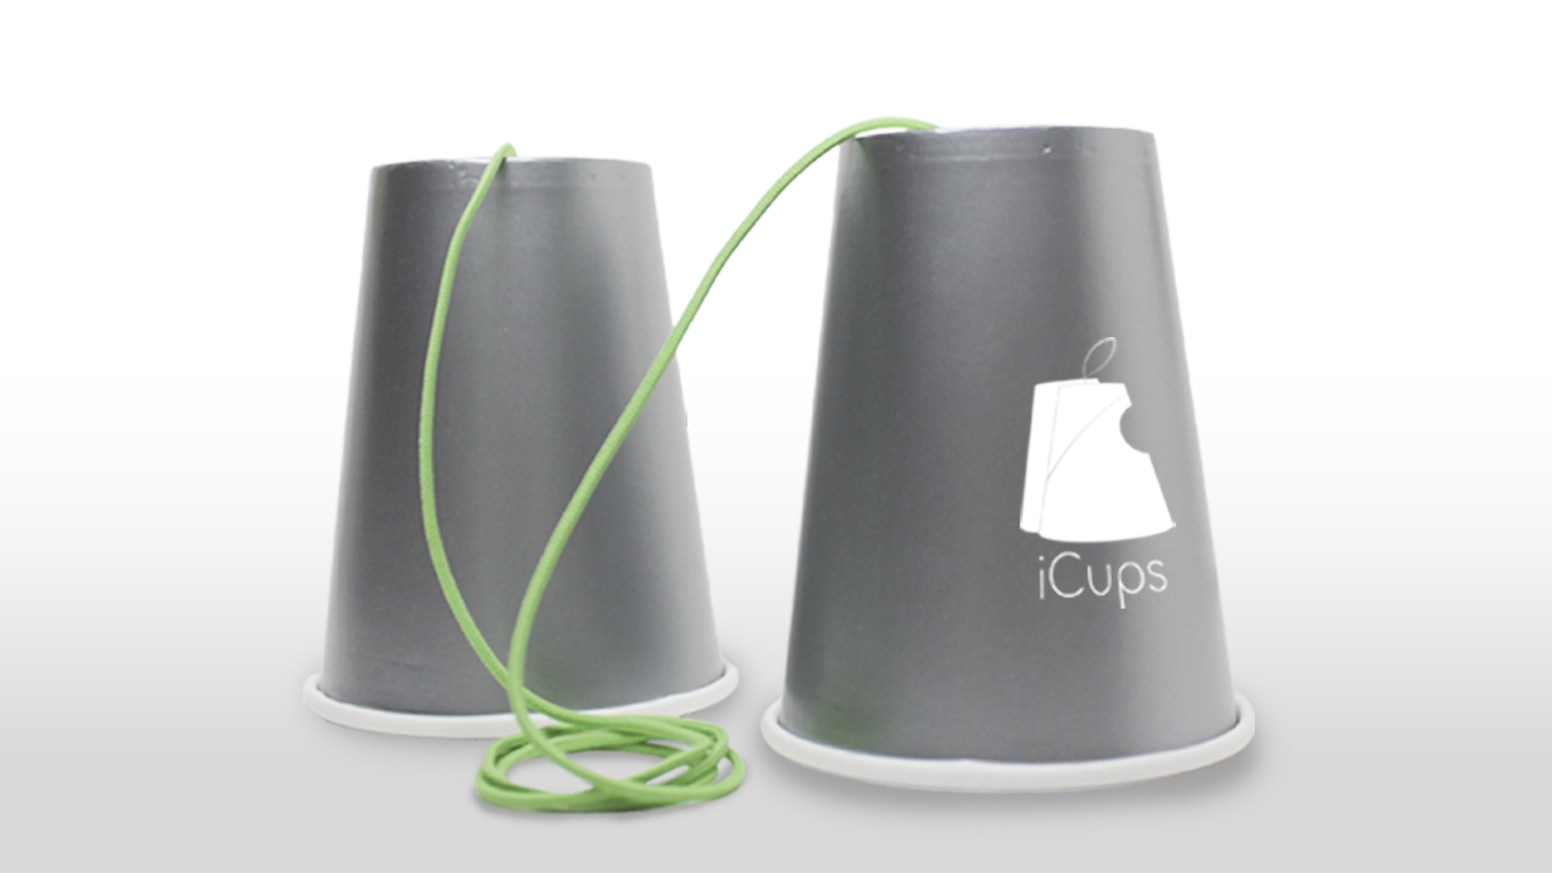 iCups - The ultimate iRonic gag gift